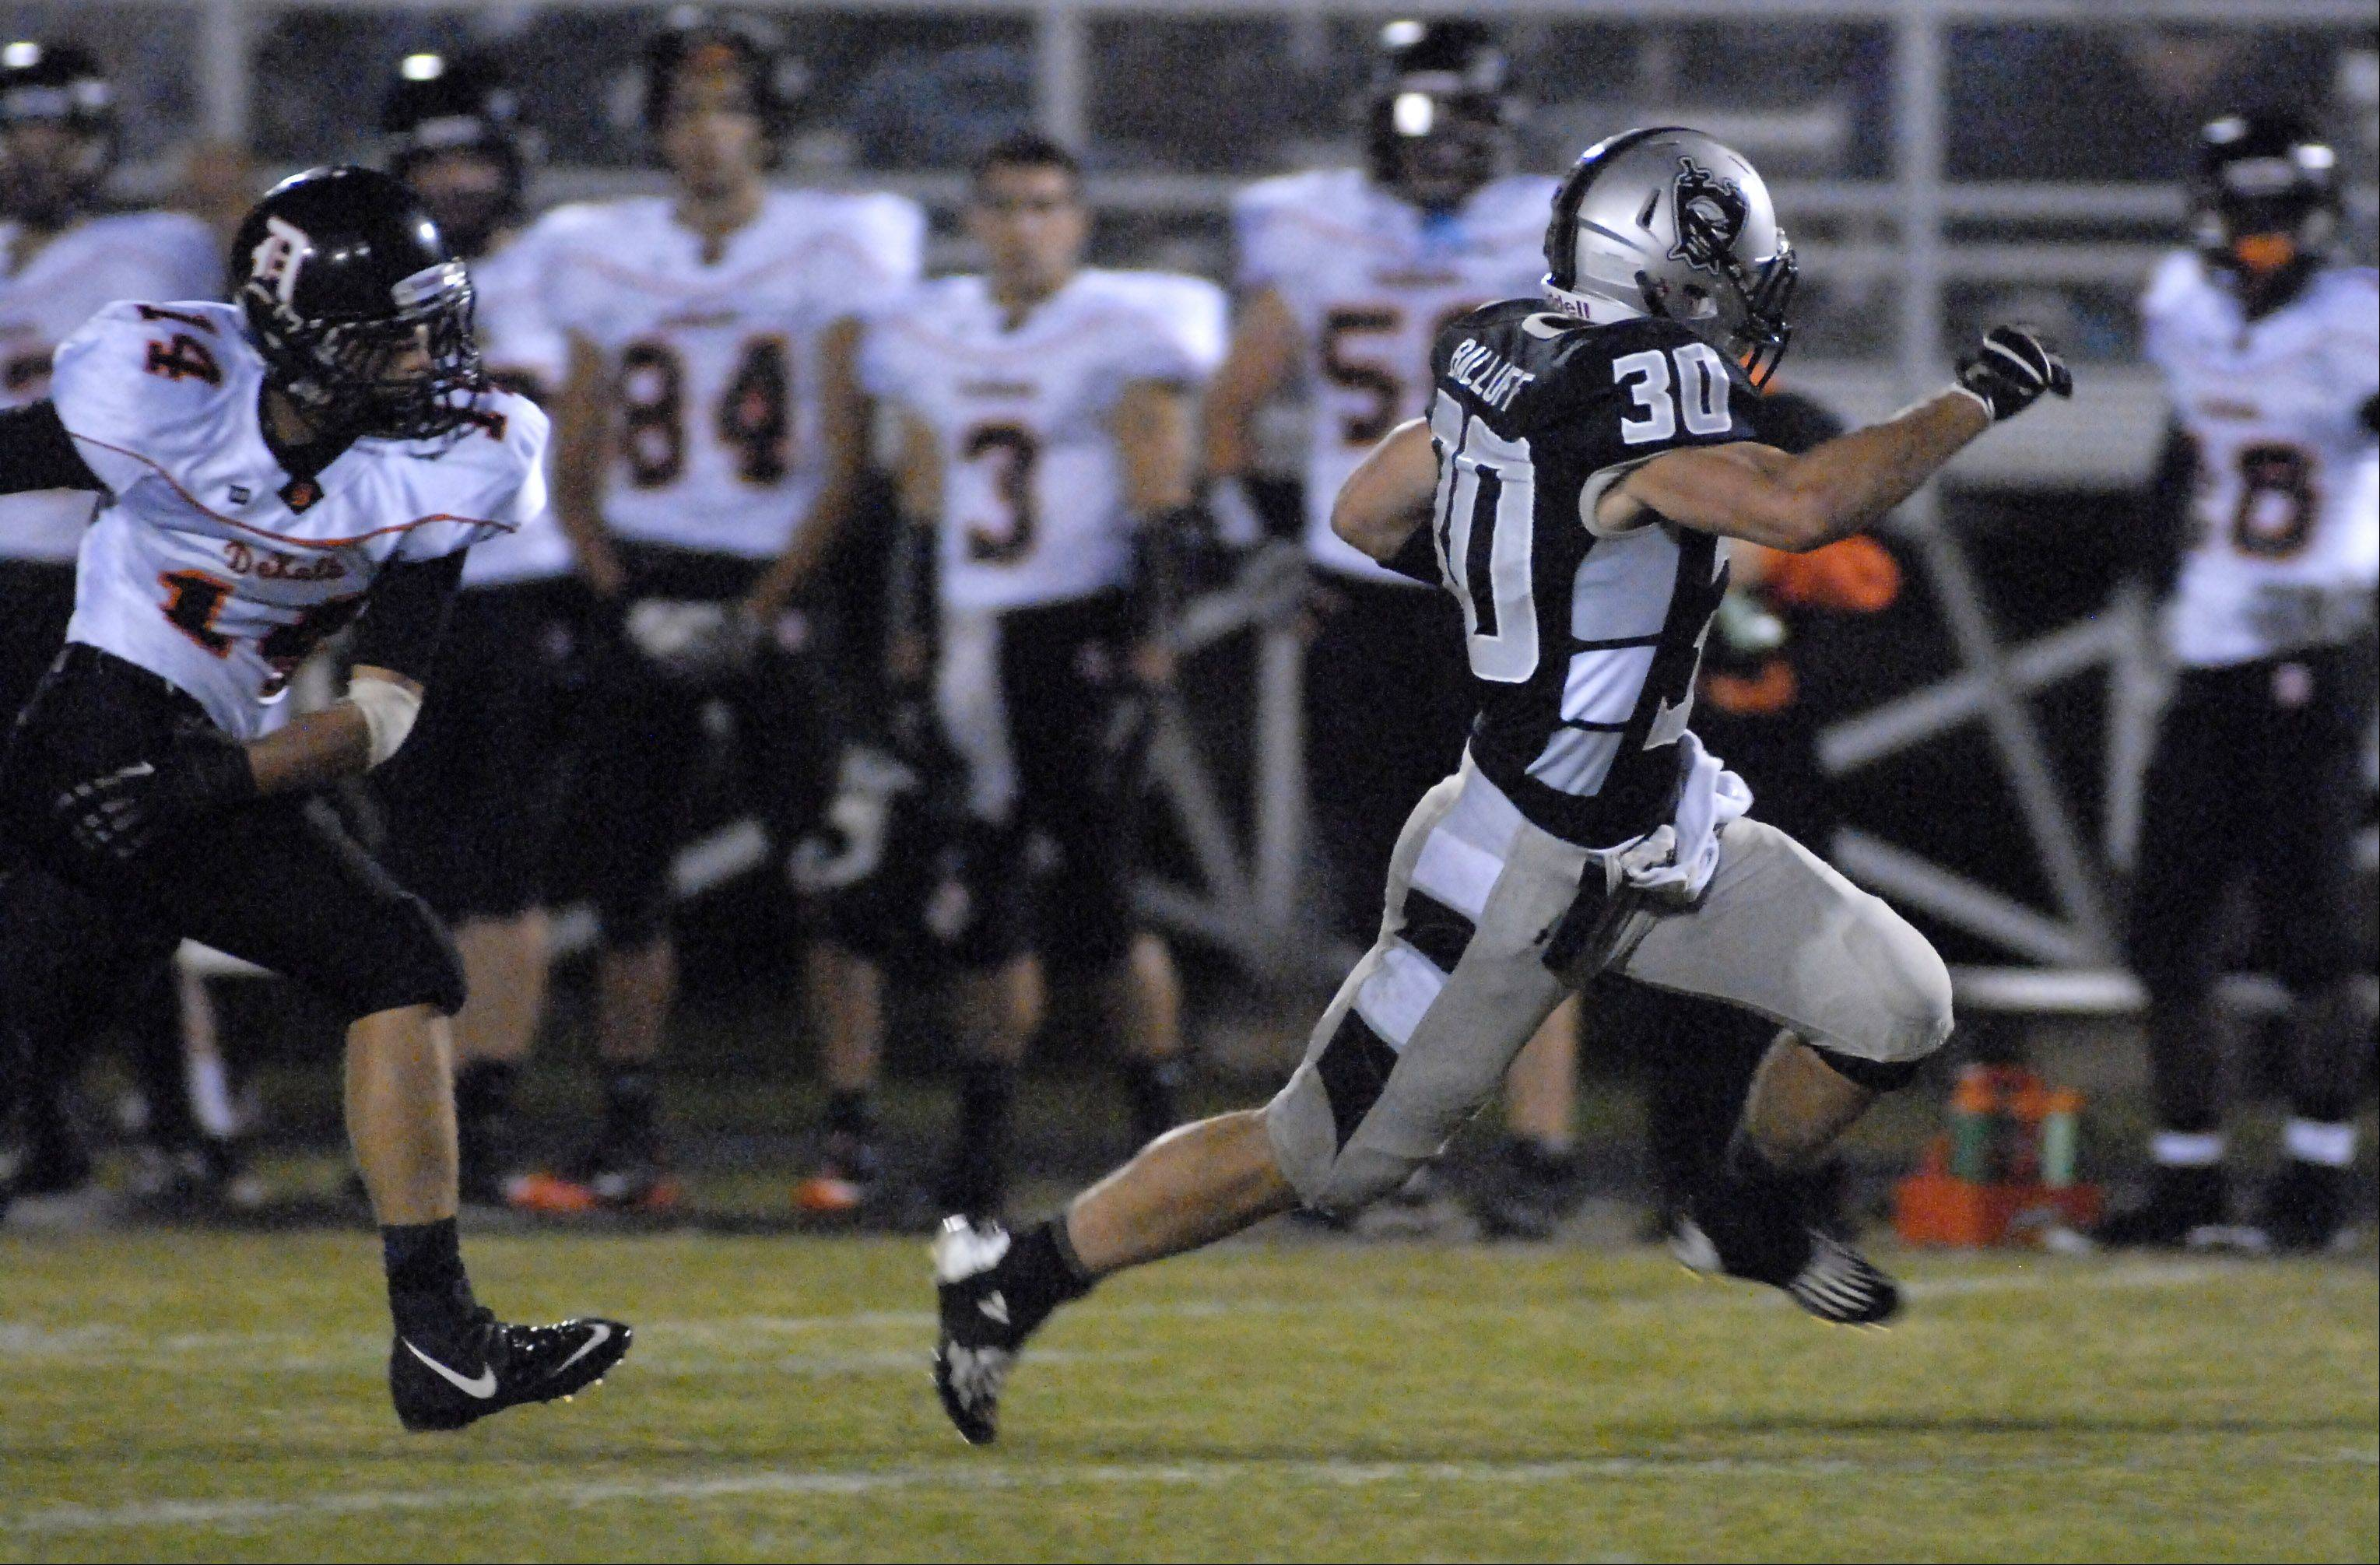 Images: Kaneland vs. DeKalb, football